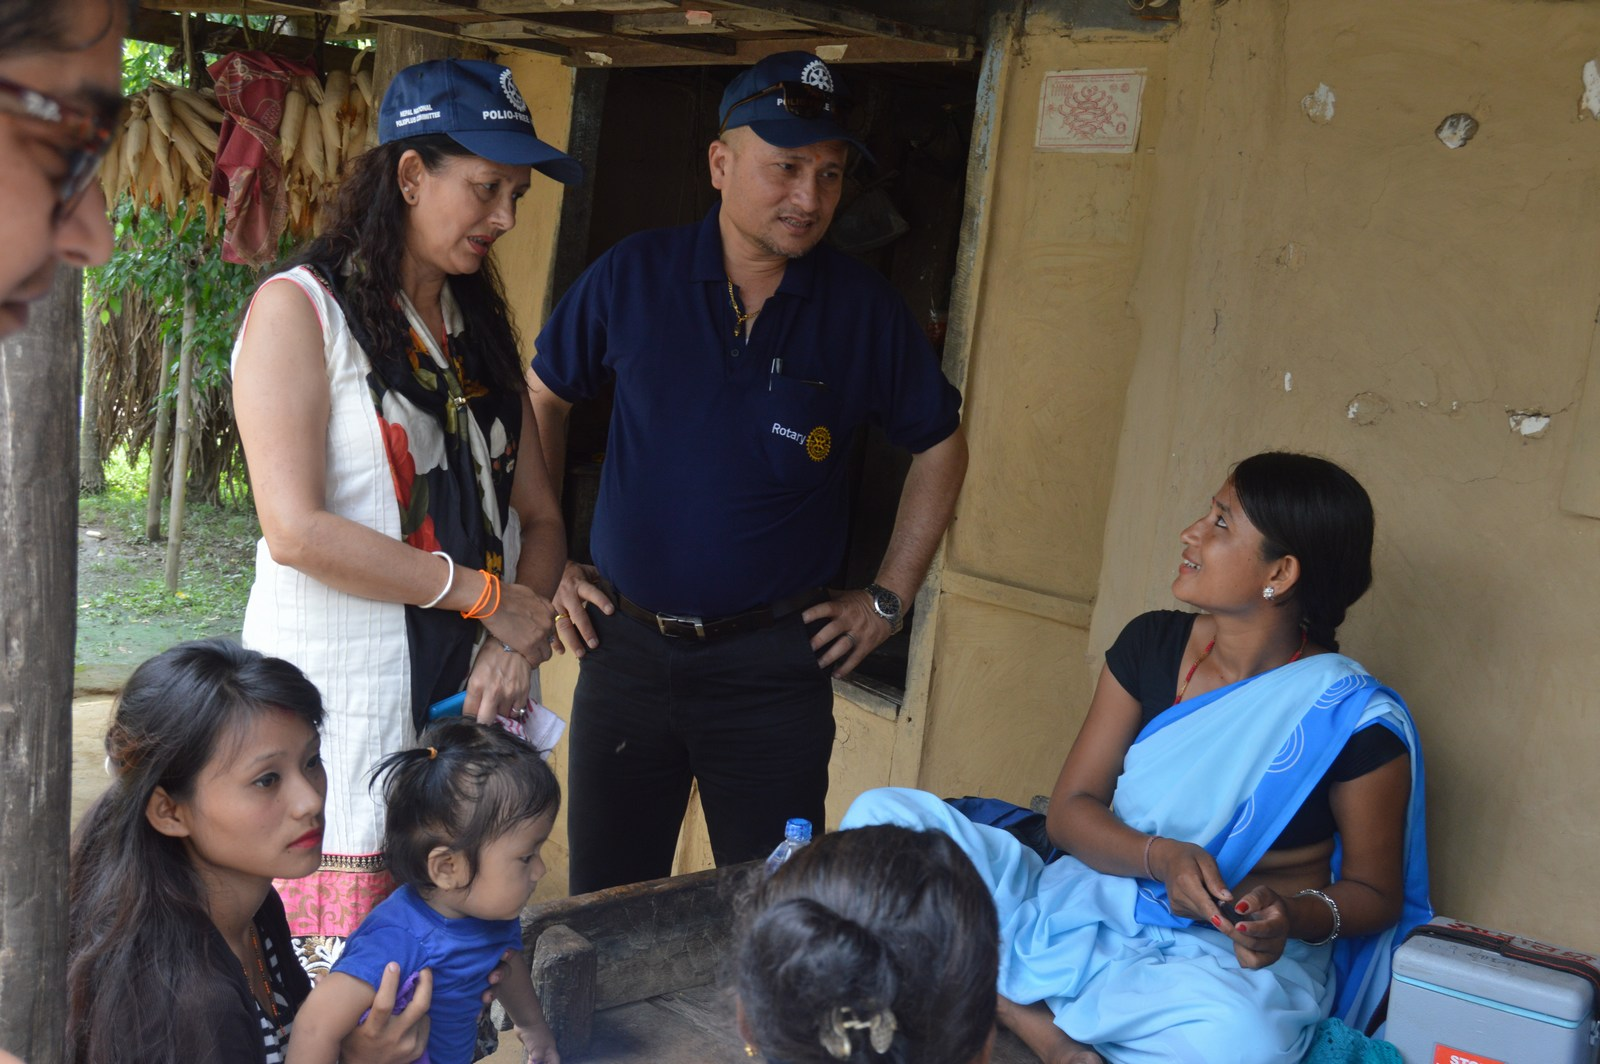 Polio Booth Inspection 43